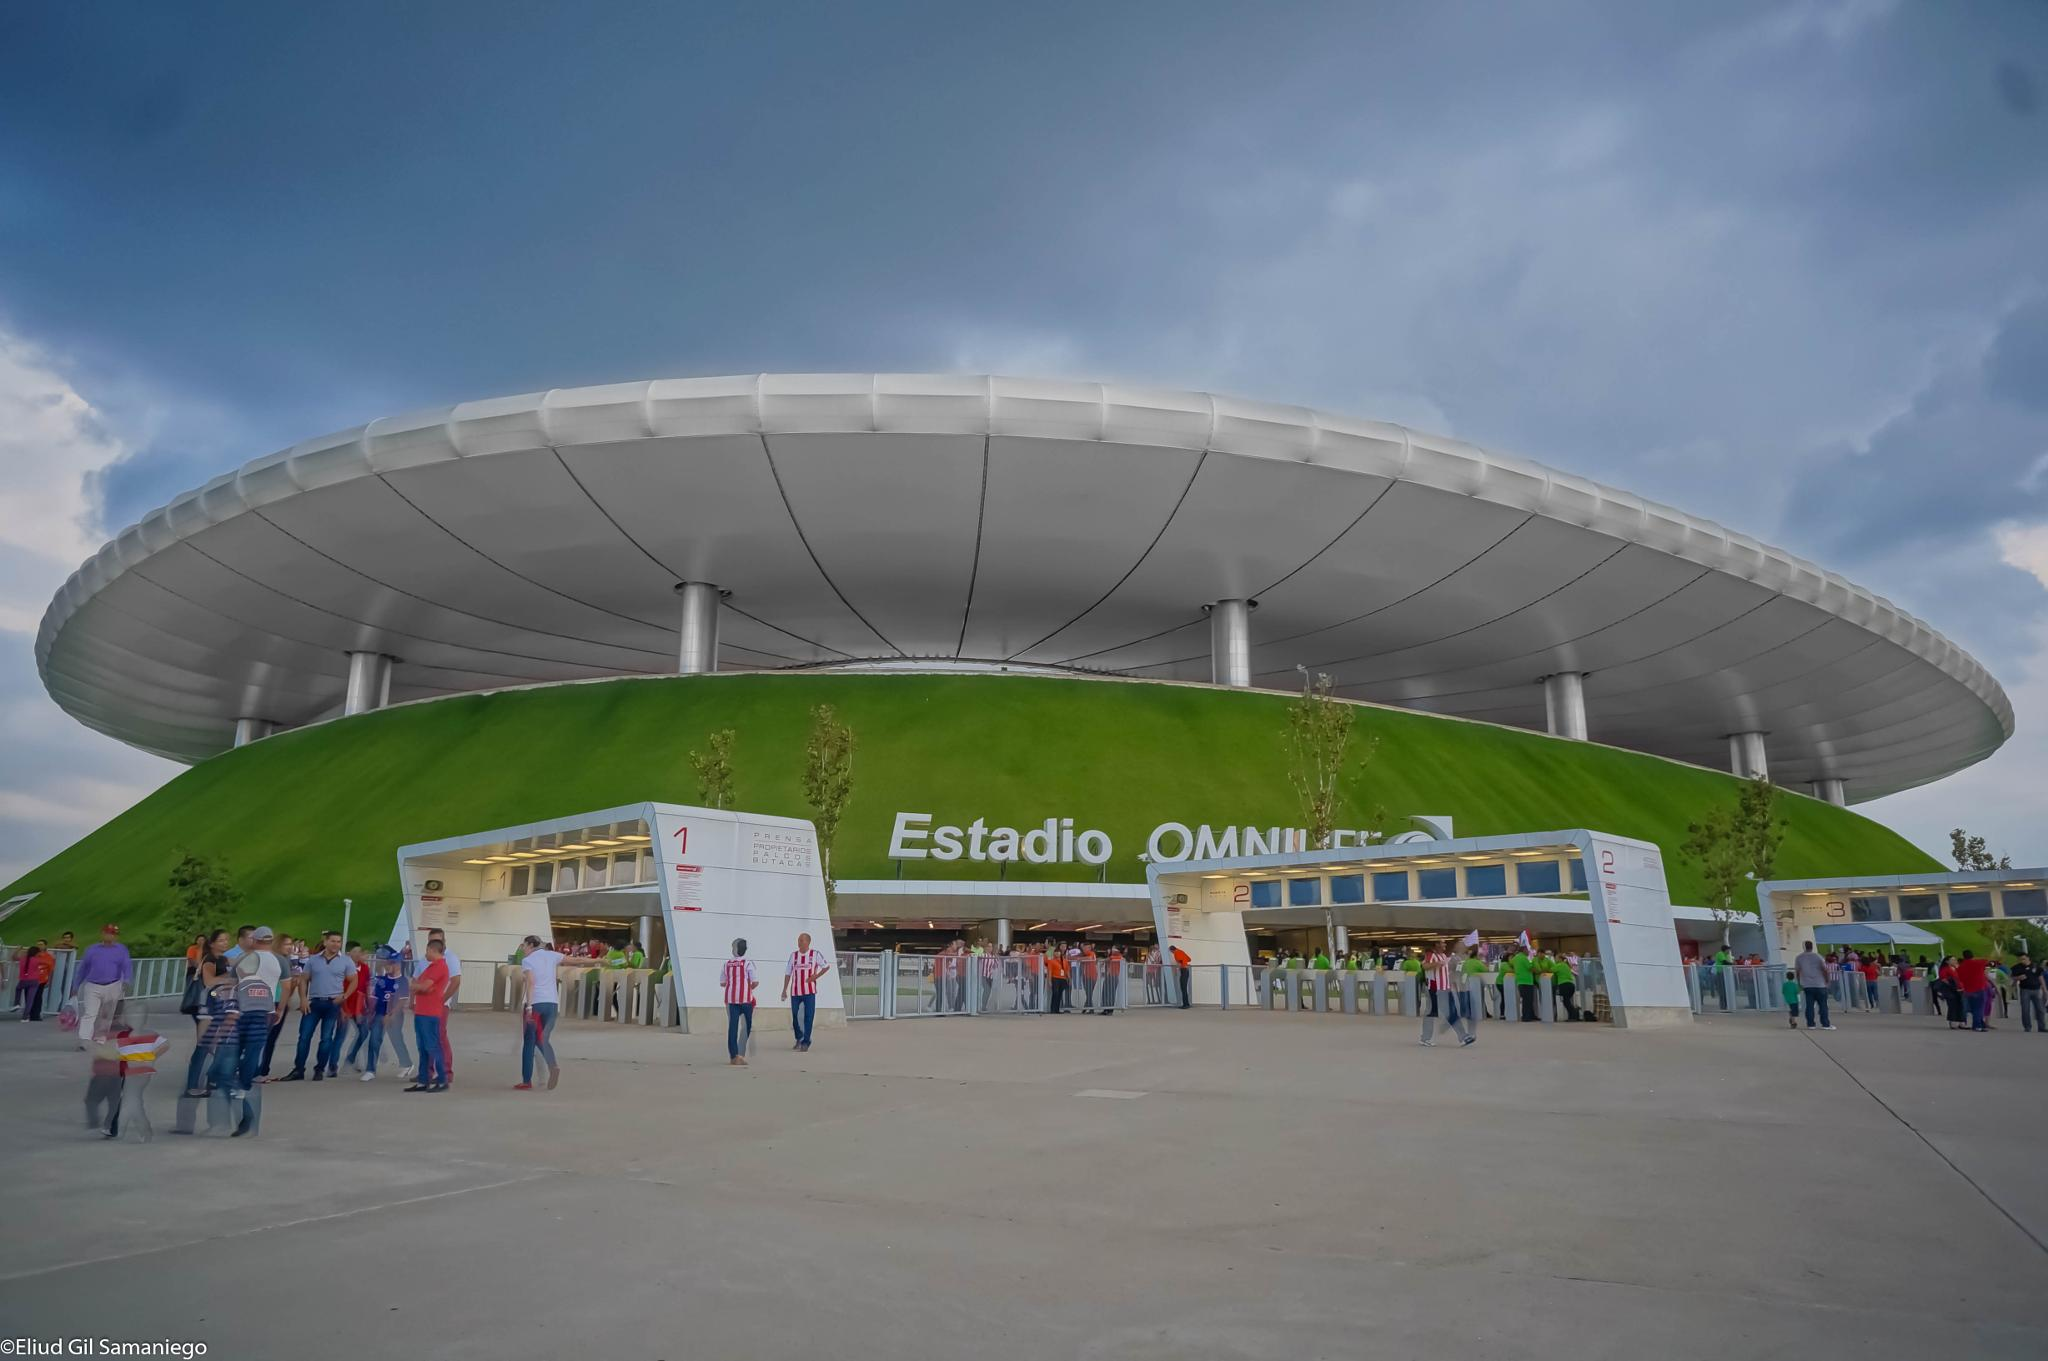 Estadio Omnilife by David Eliud Gil Samaniego Maldonado